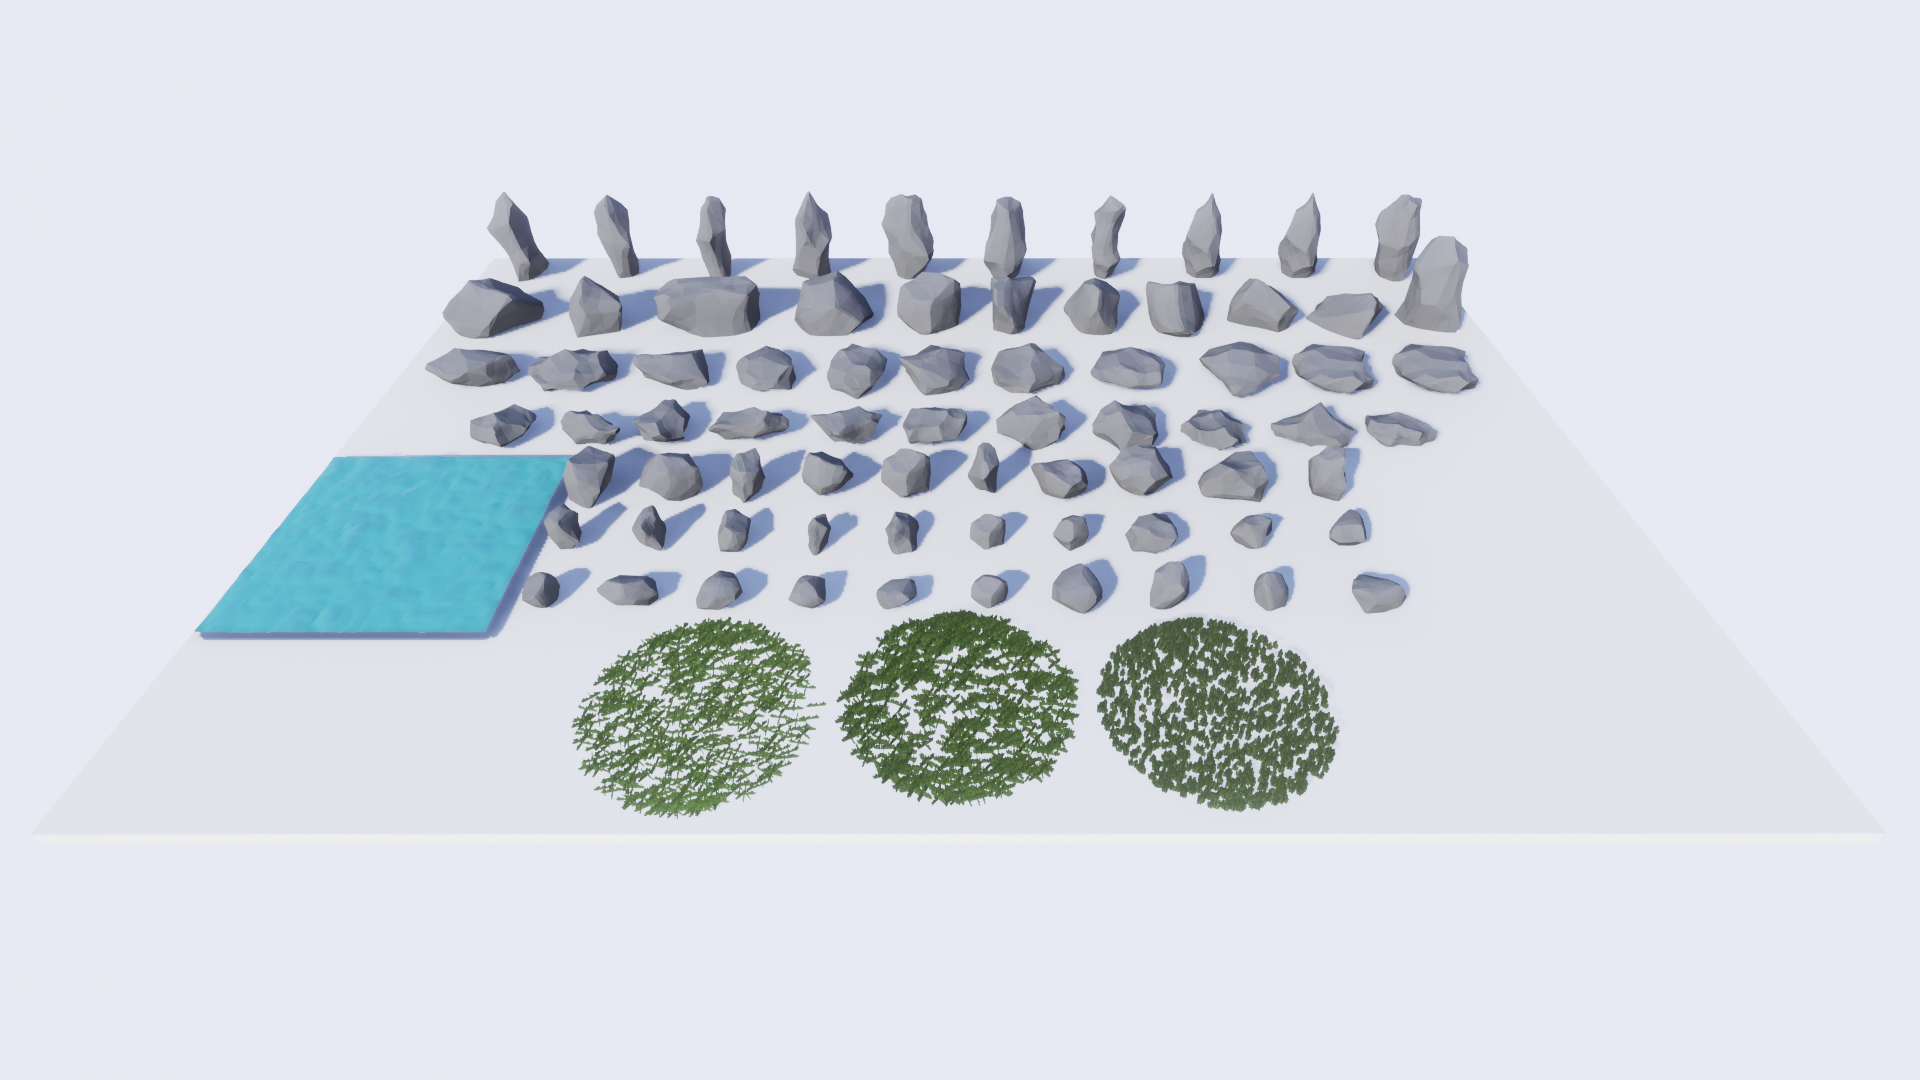 Olbert's Low Poly: Rocks by Whitman And Olbert in